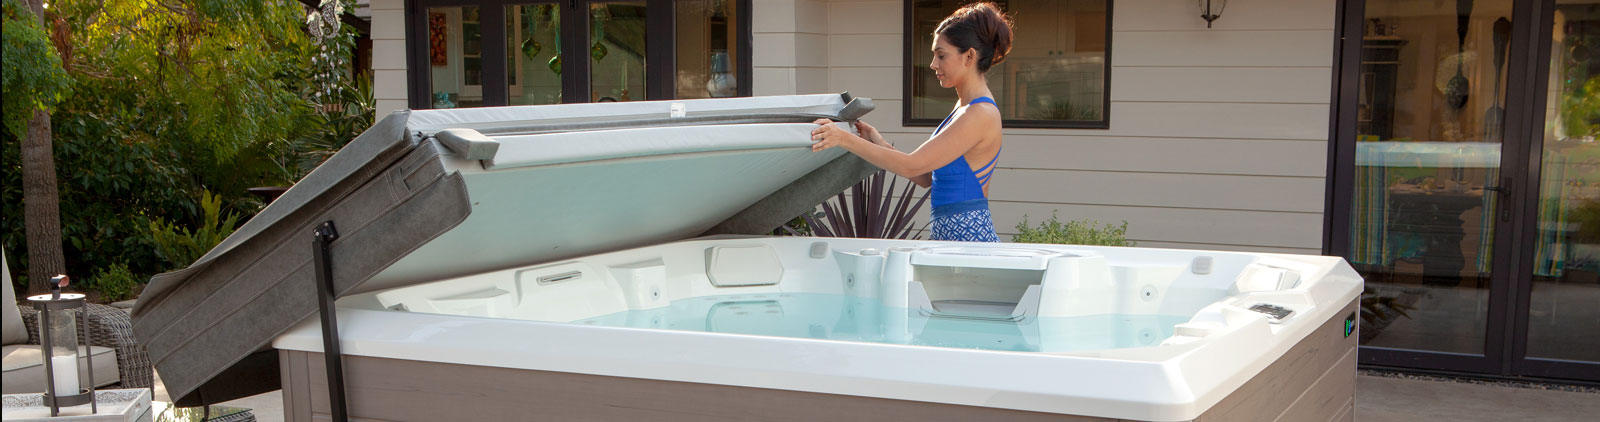 Buy Hot Tub >> What Are The Top Ten Tips On How To Buy A Hot Tub Mainely